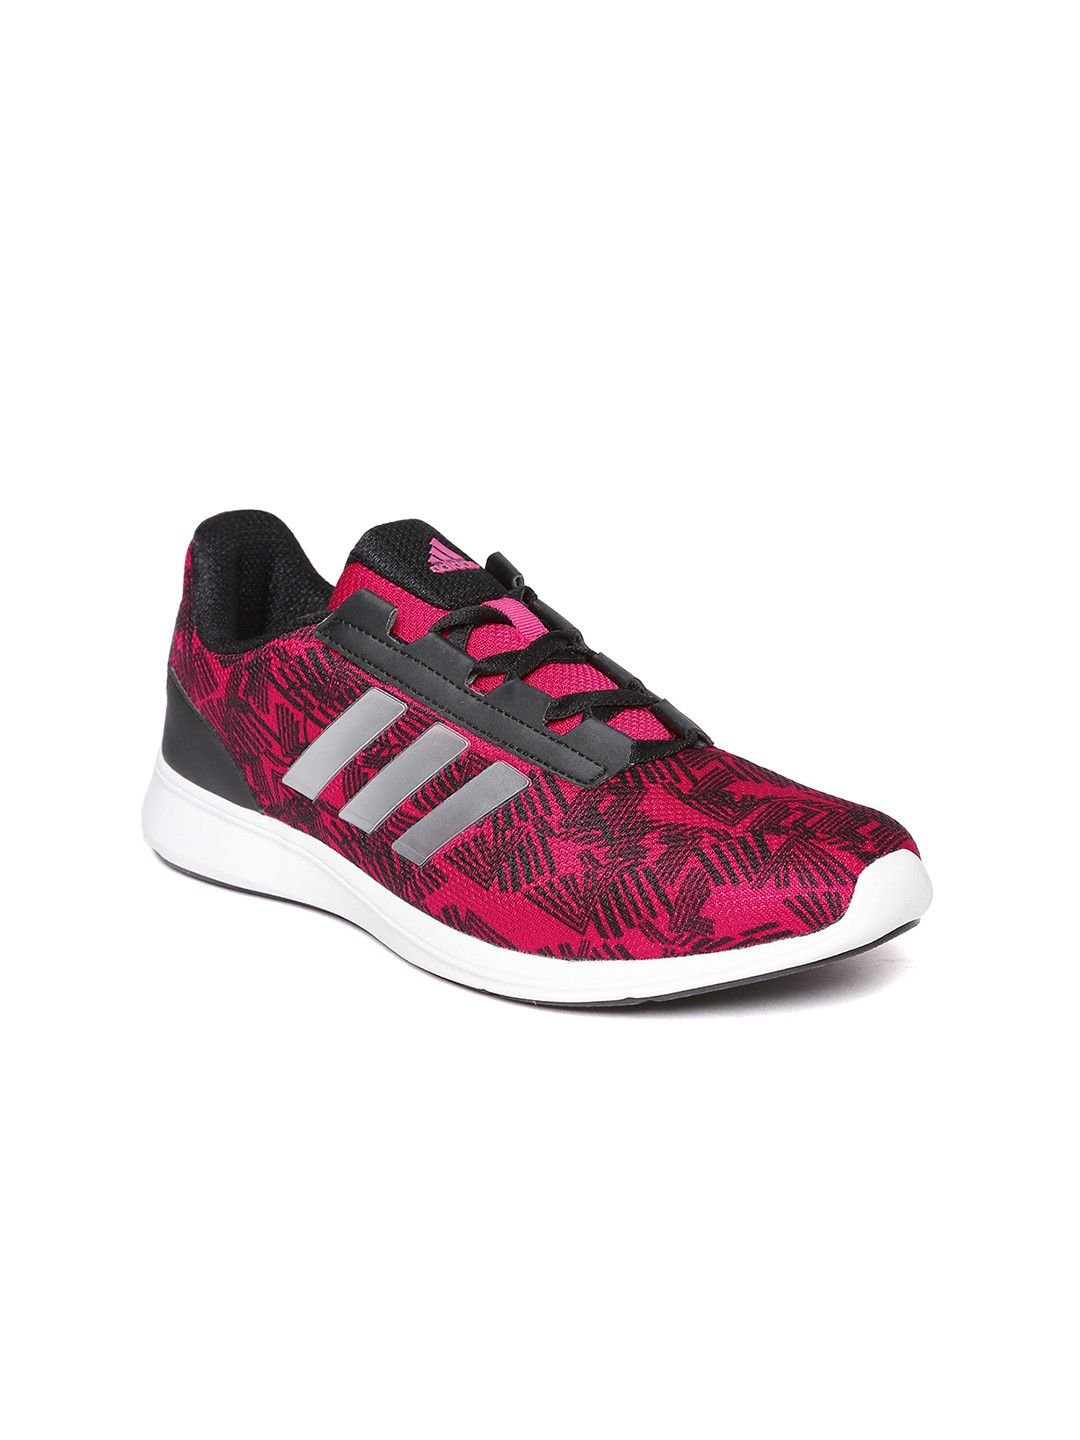 Adidas Nike shoes cheap, Nike shoes for sale, Rose gold